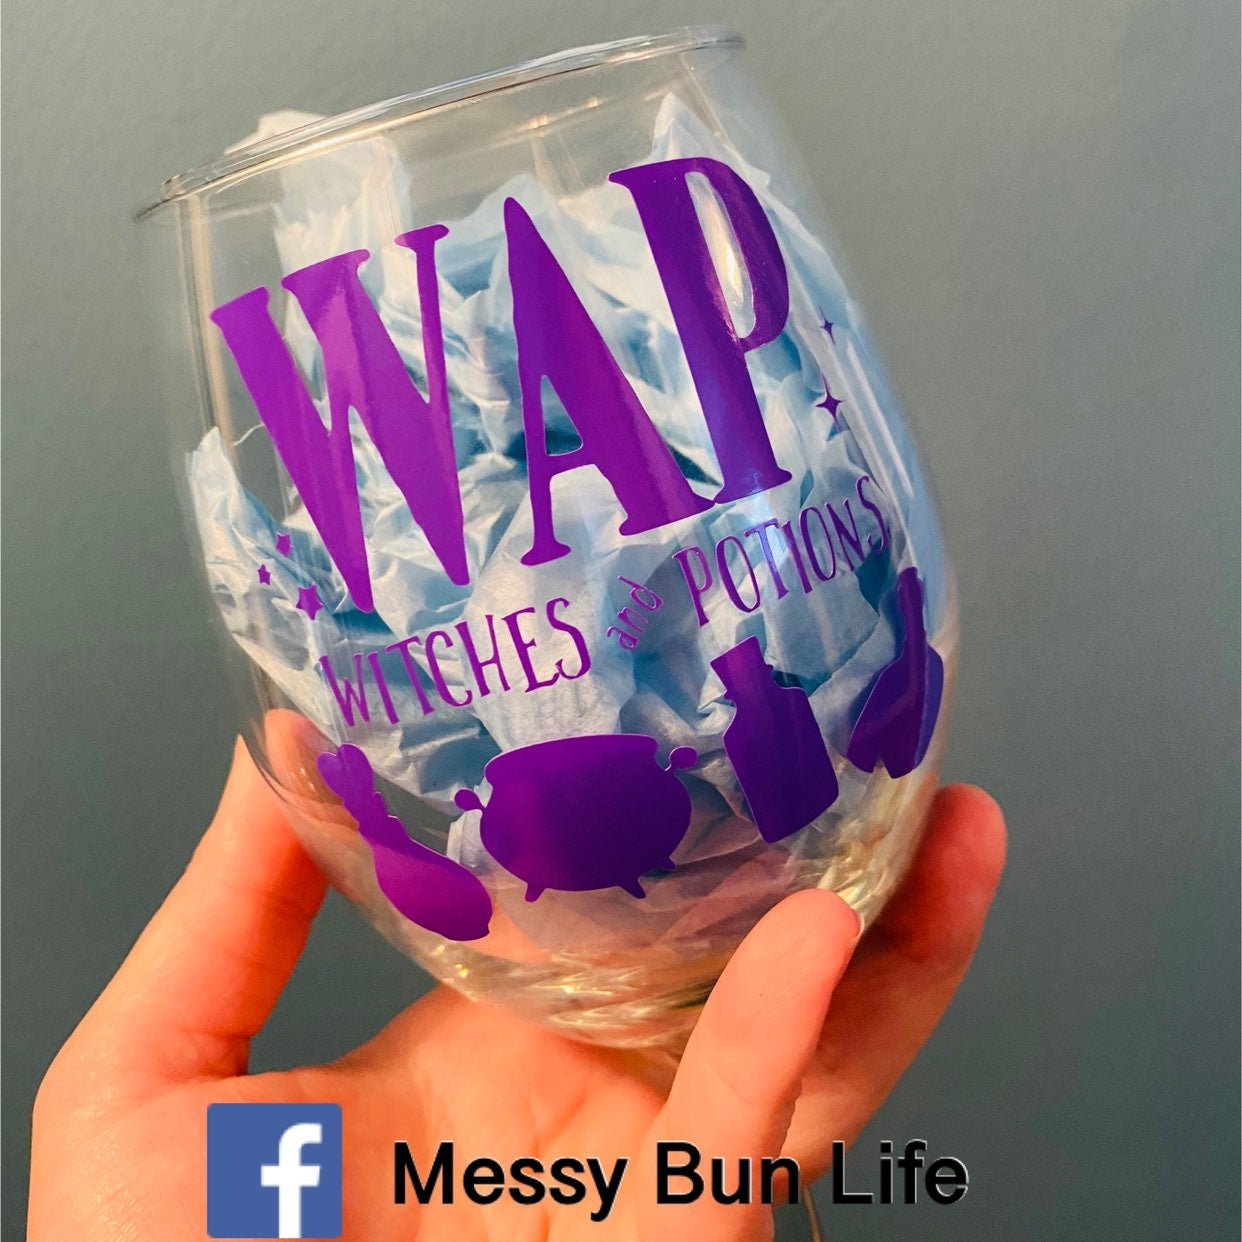 WAP Witches and Potions Wine Glass